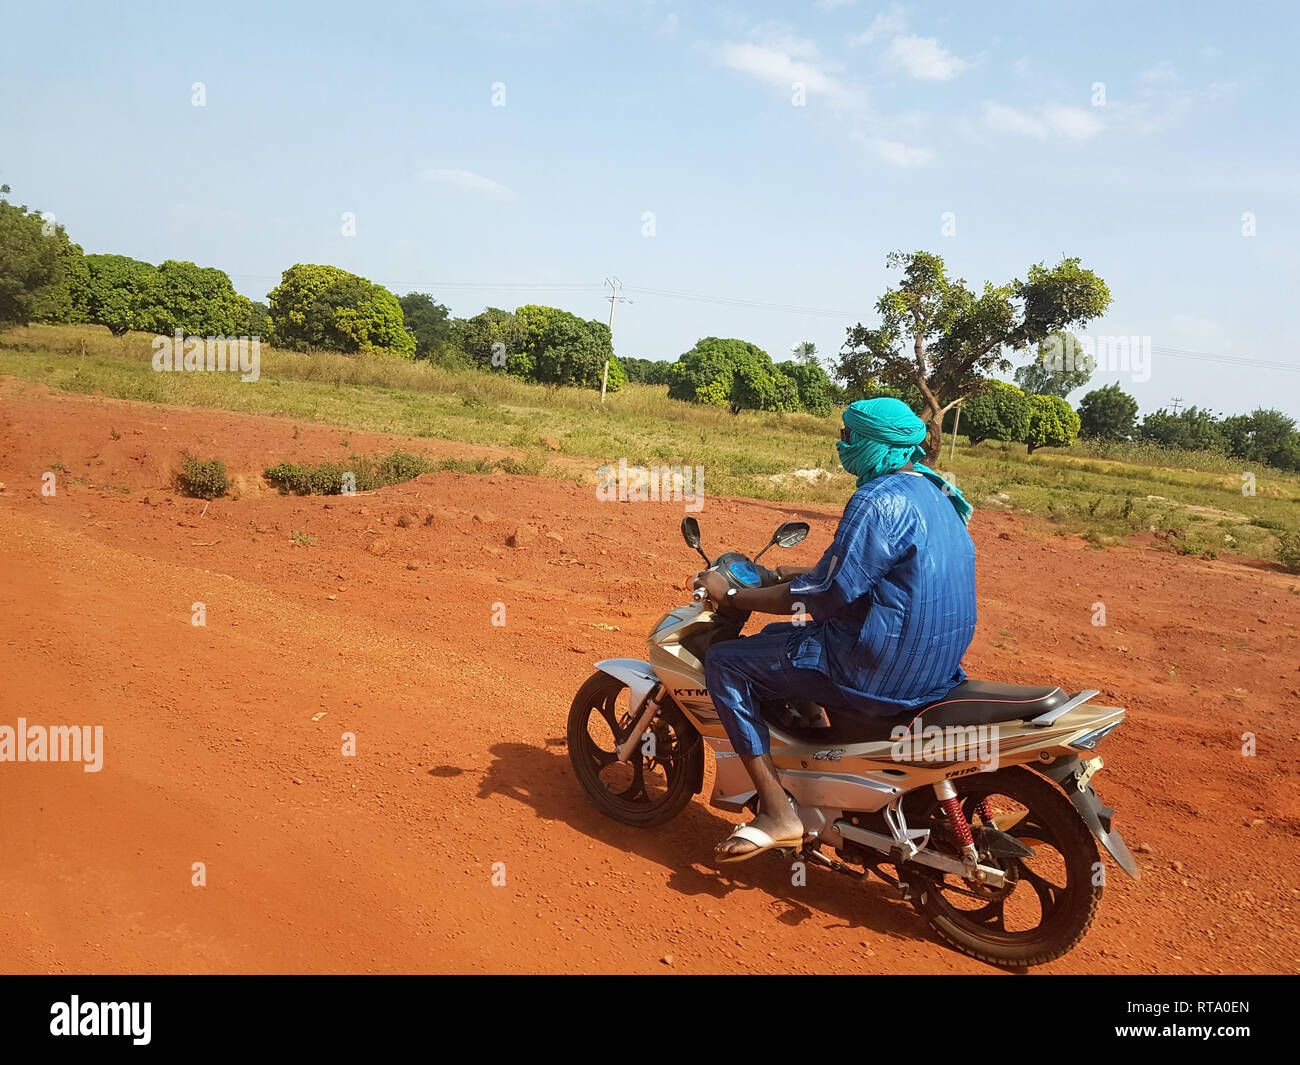 BAMAKO, MALI - DEC 19, 2016: African paysage with Touareg on his KTM bike driving fast ont the red african soil  Stock Photo